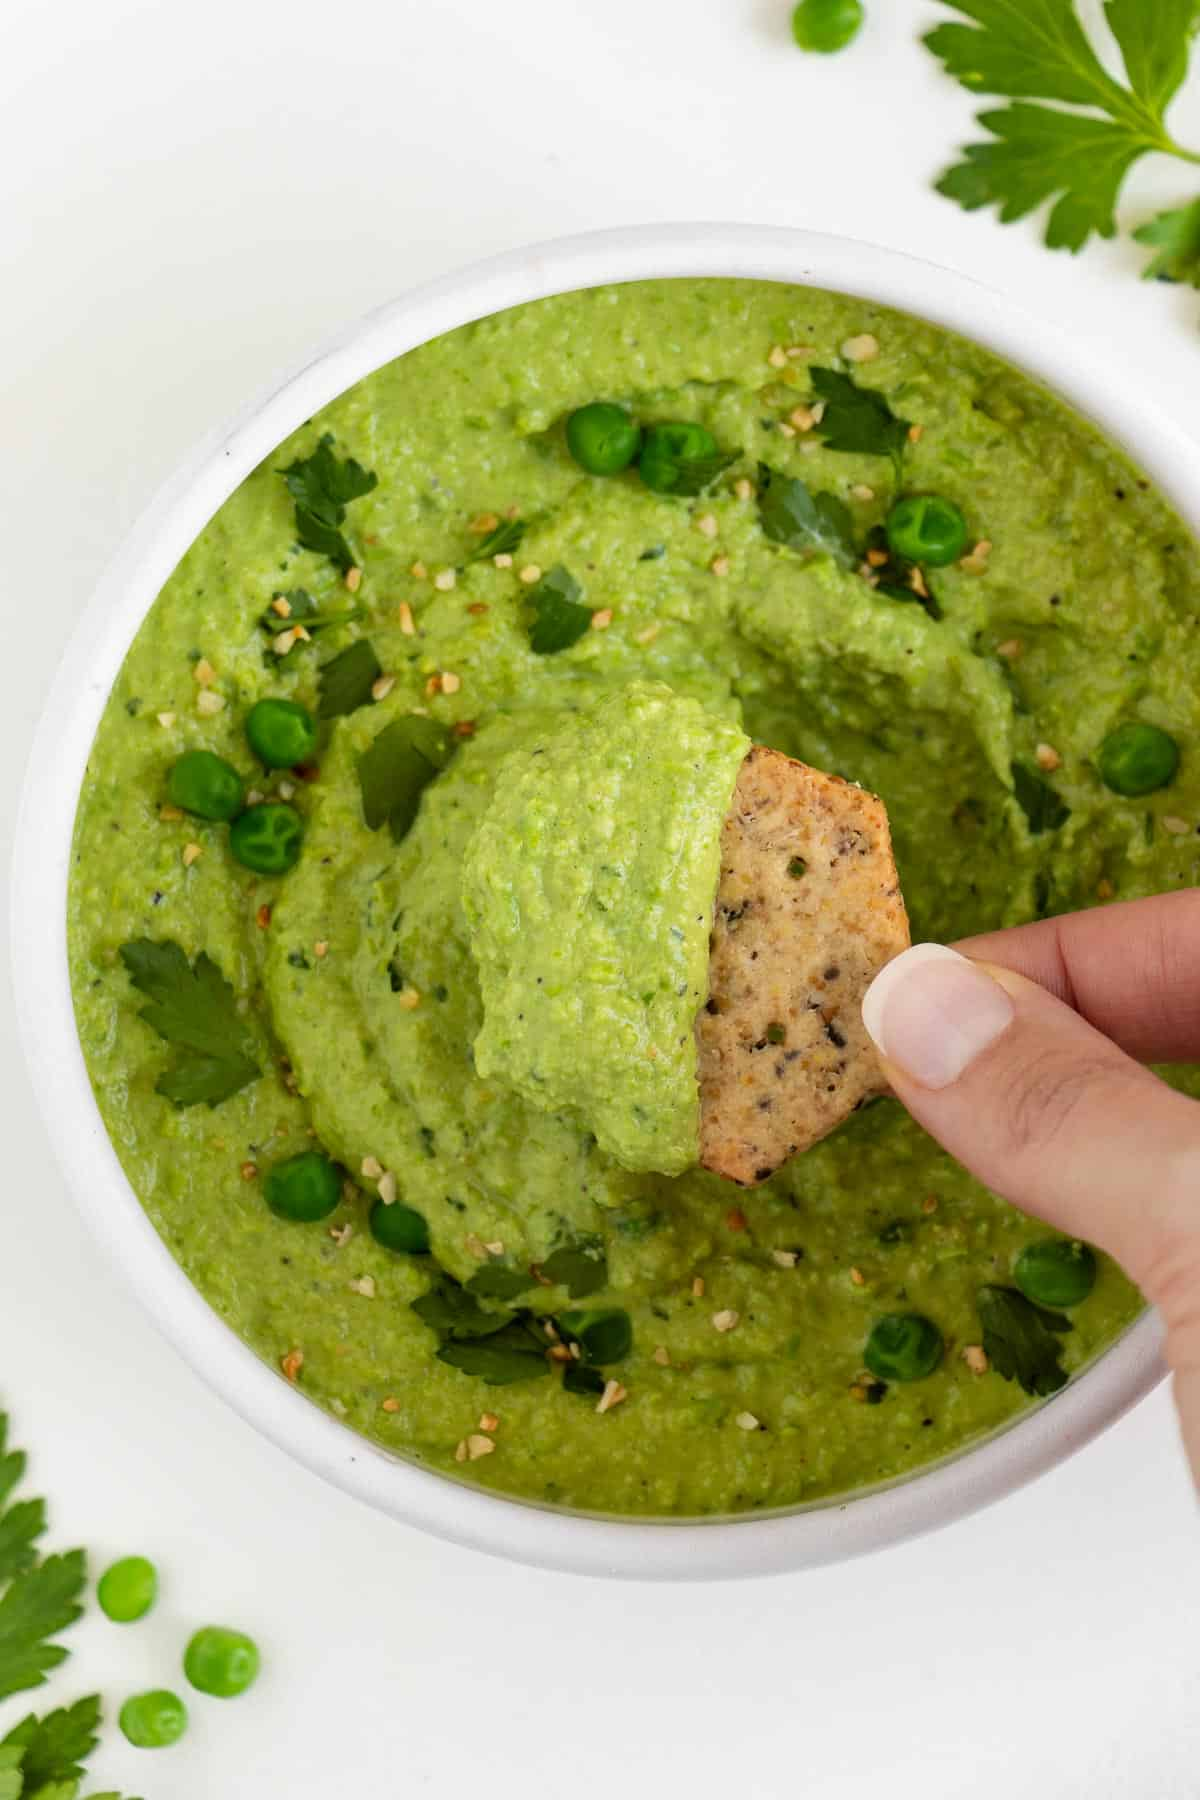 a hand scooping a cracker into a bowl of green pea dip